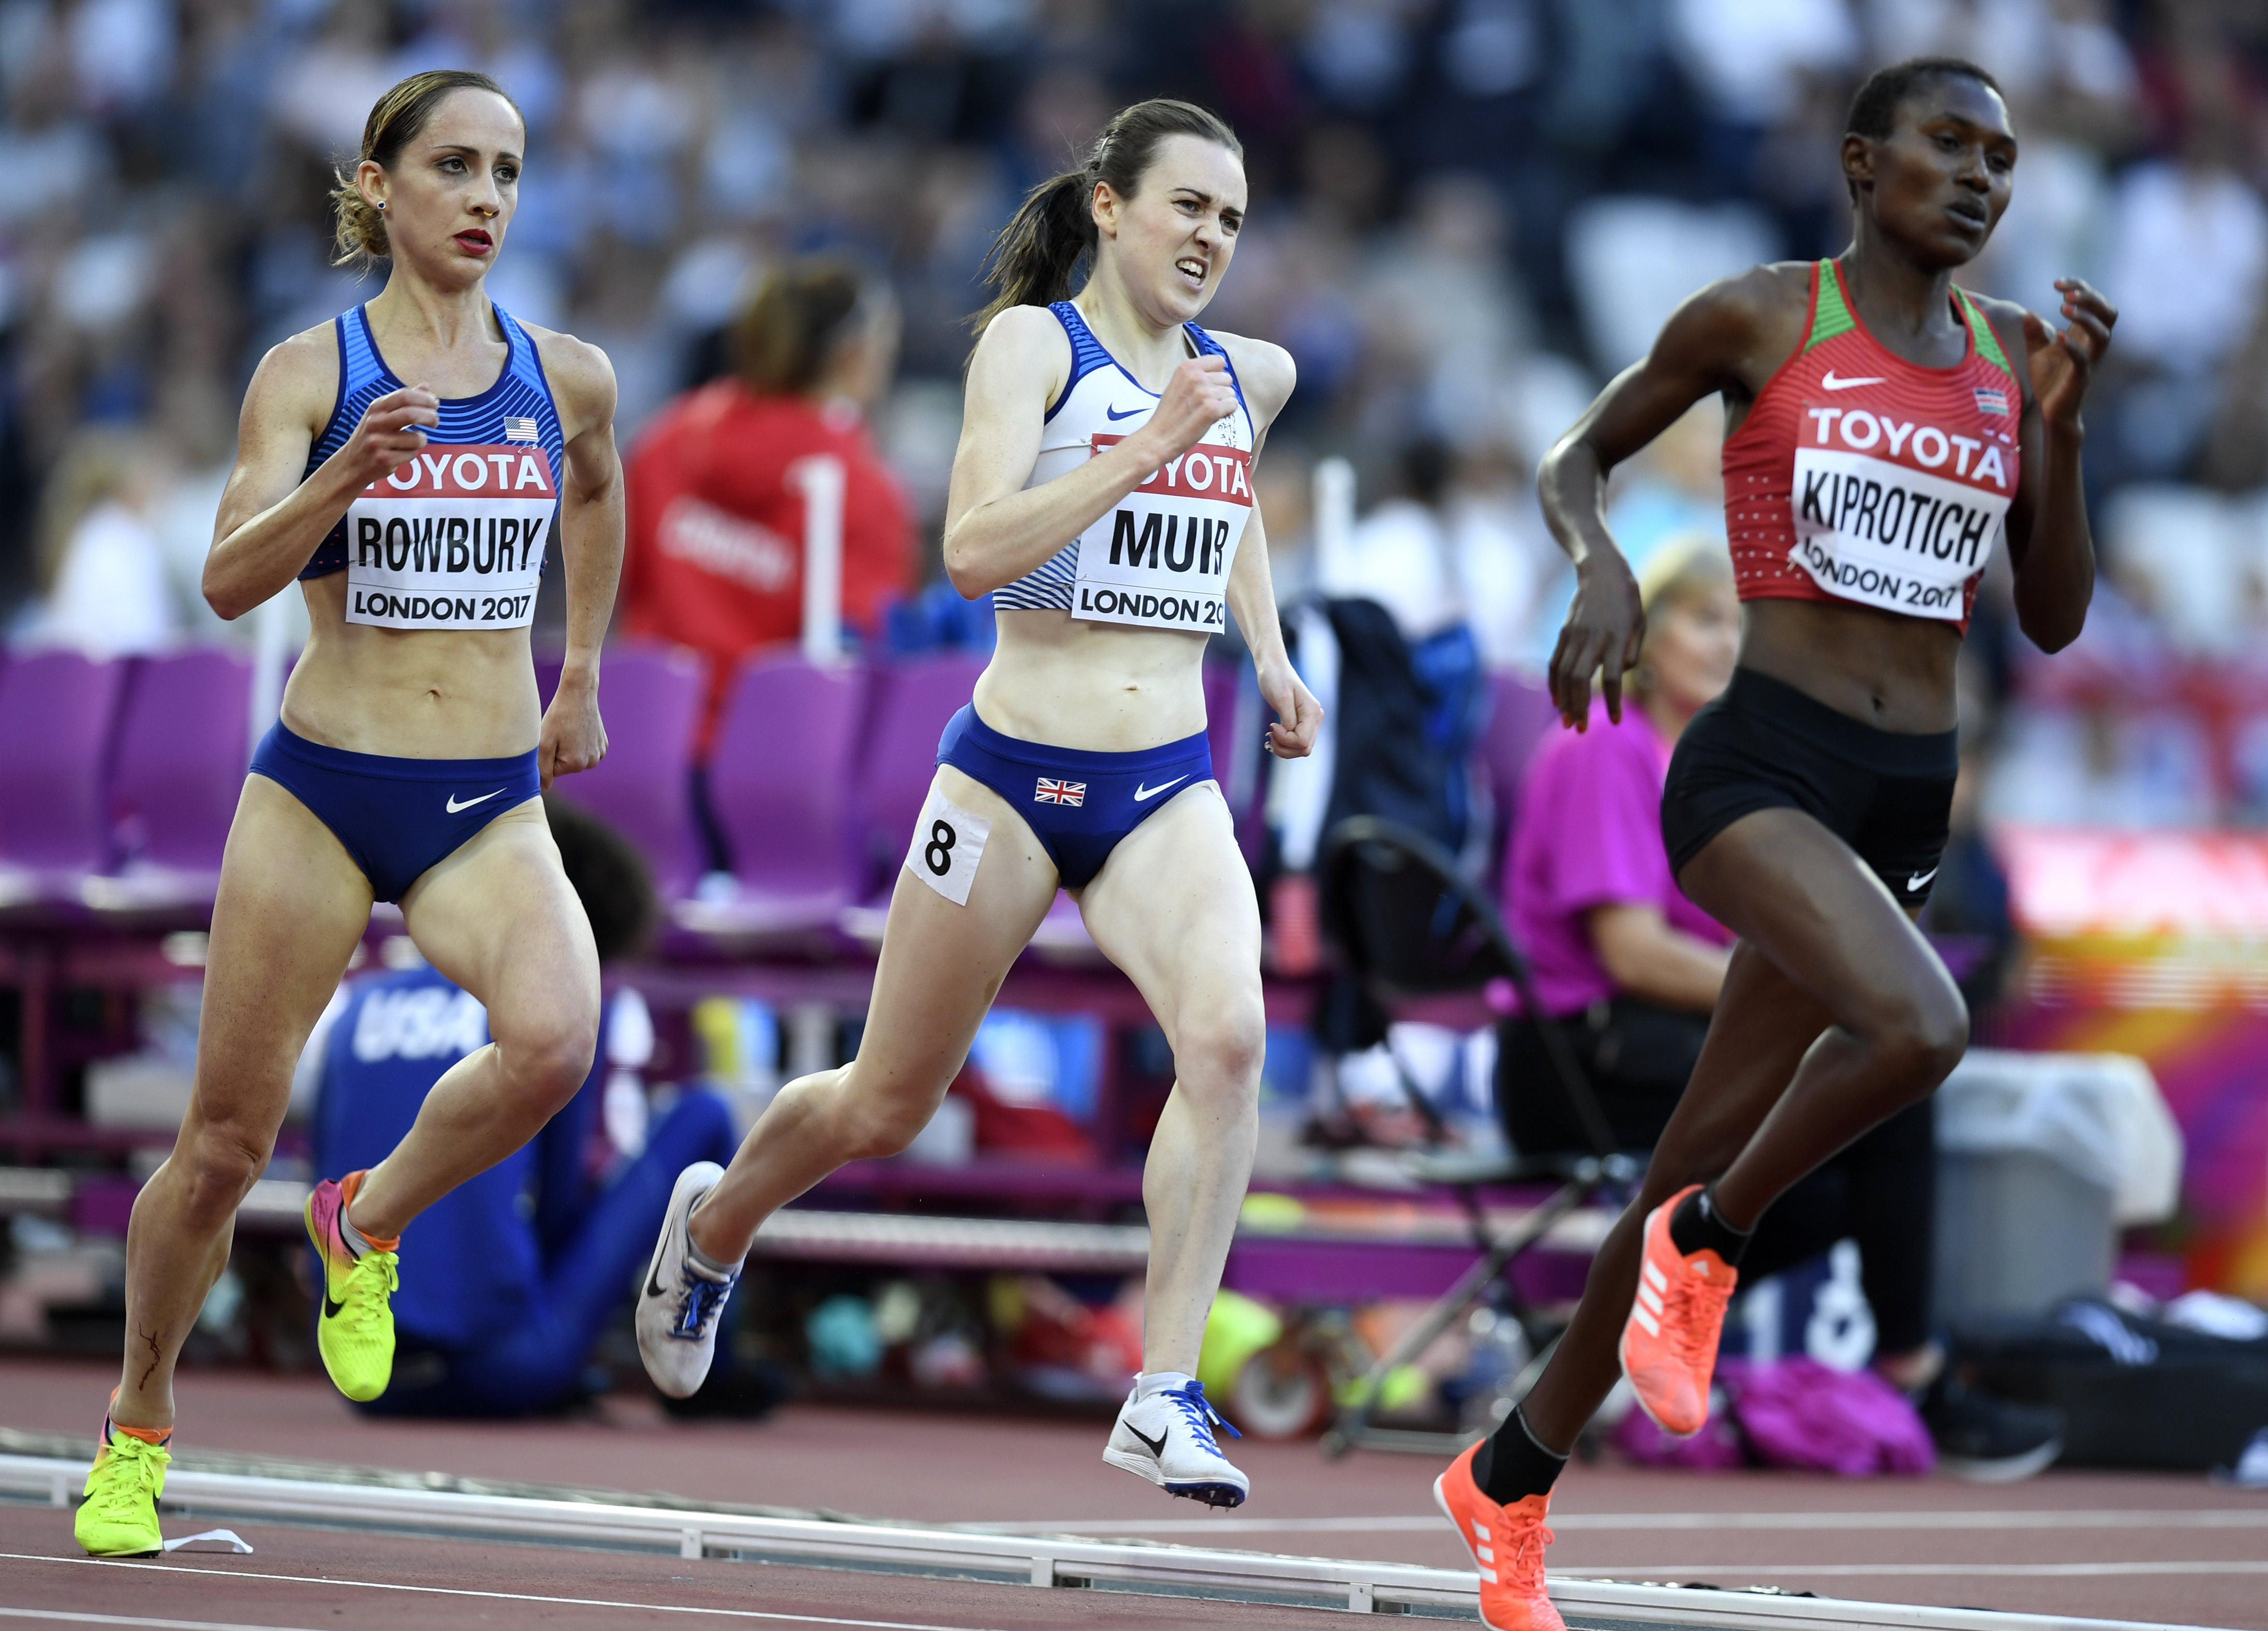 The Brit star did herself proud in a gruelling race